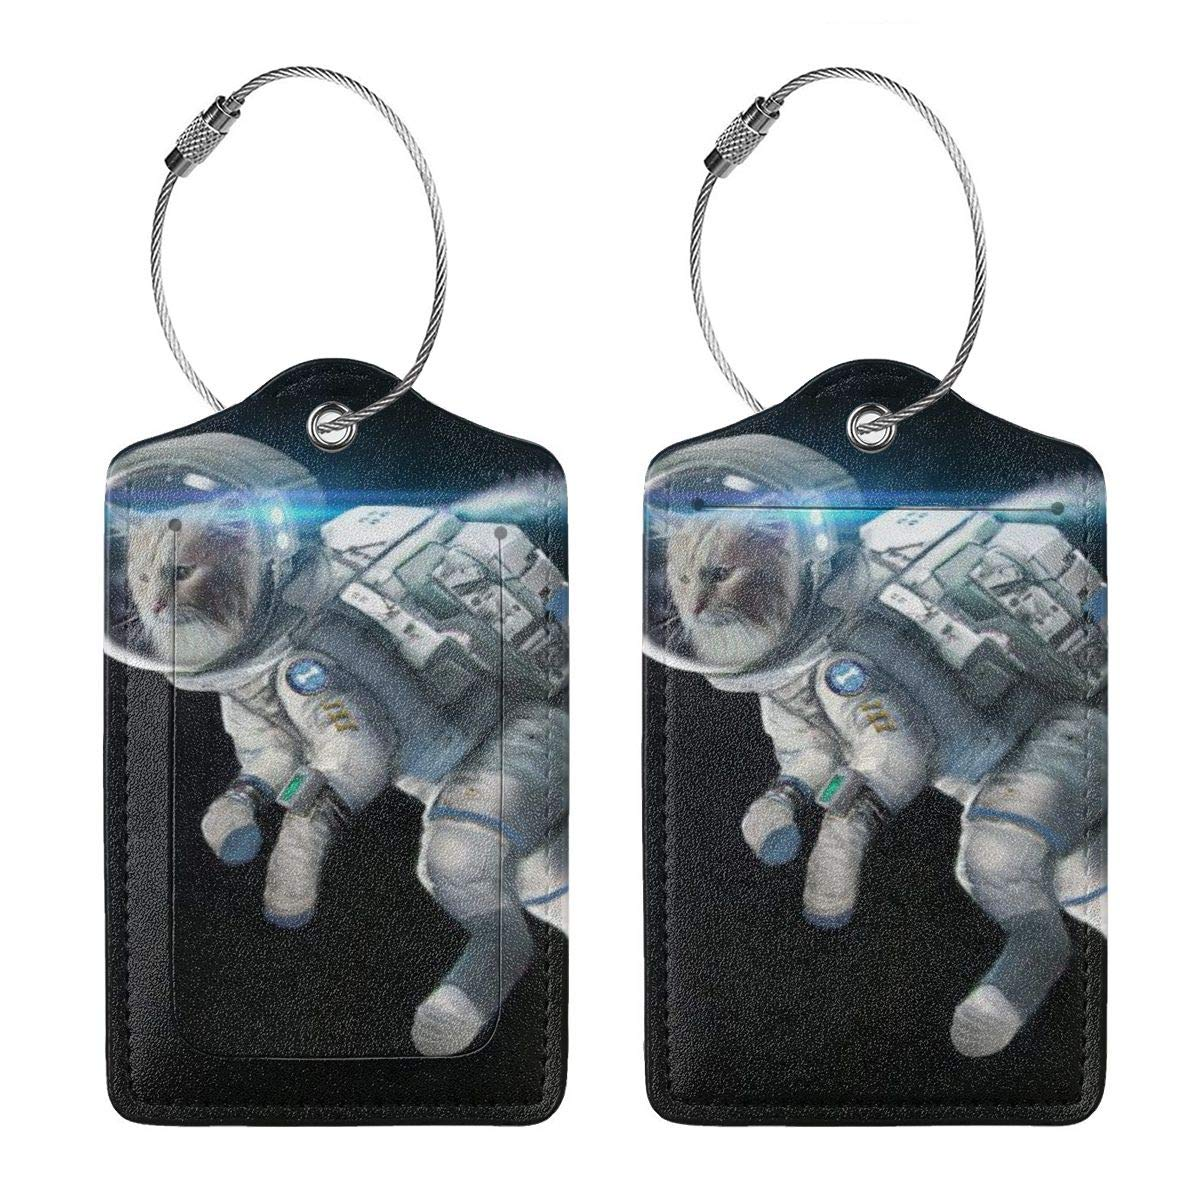 Godzigod Luggage Tags Leather Case Suitcase Label with Stainless Steel Loop Bag Baggage Tote Tags Travel Tags Cat in Space Helmet